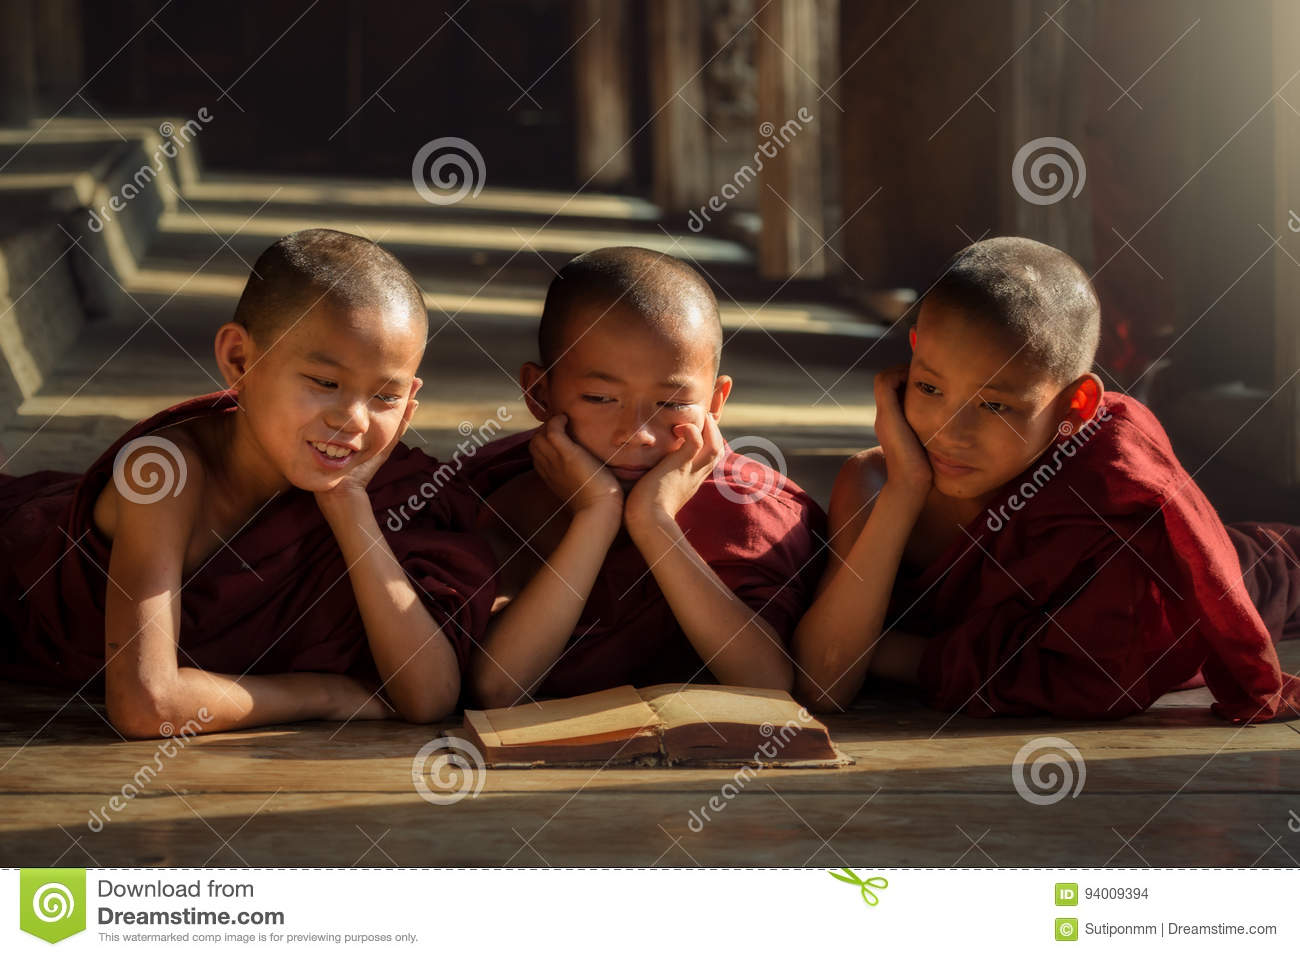 Burmese novices or three priests are reading happily in the classroom. Counting the development of education in Mandalay Myanmar